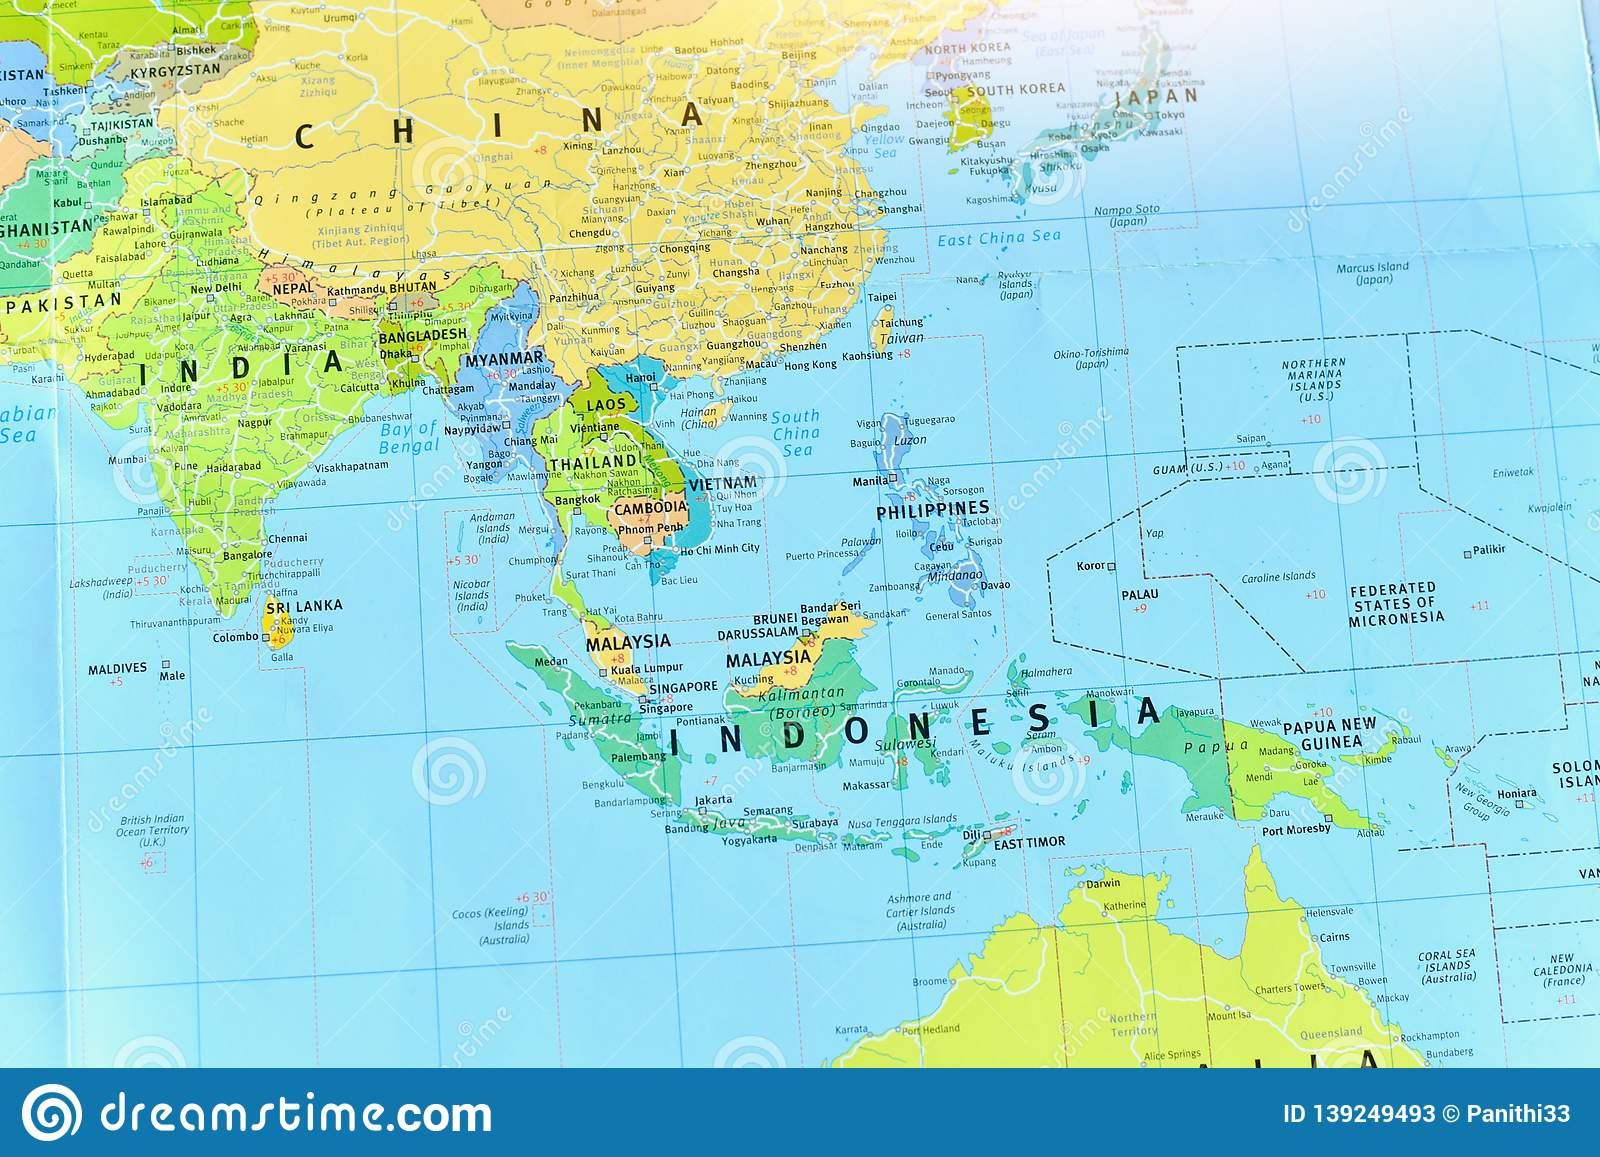 Southeast Asia Map Political.Political Map Of Southeast Asia Countries Stock Image Image Of